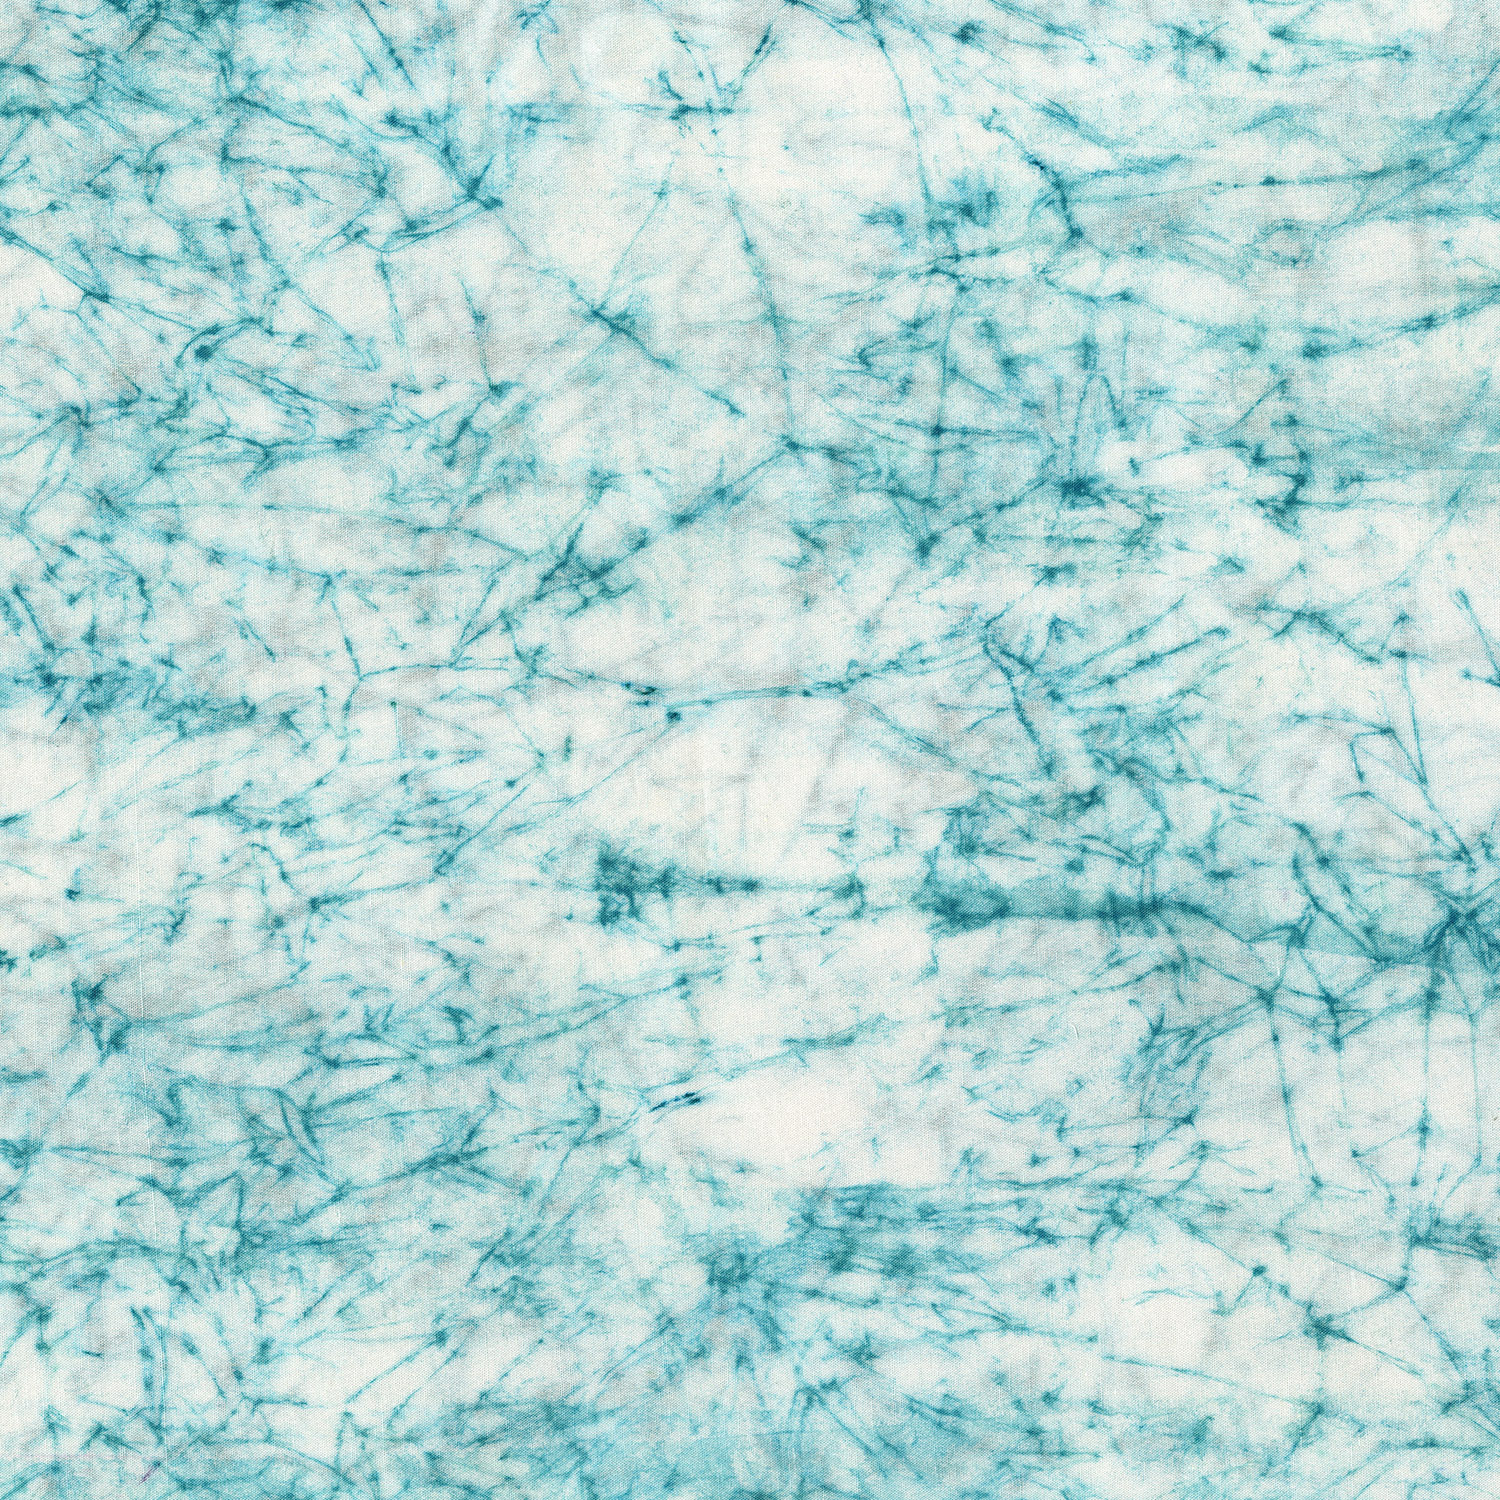 3348-003  CRACKLE-ICE